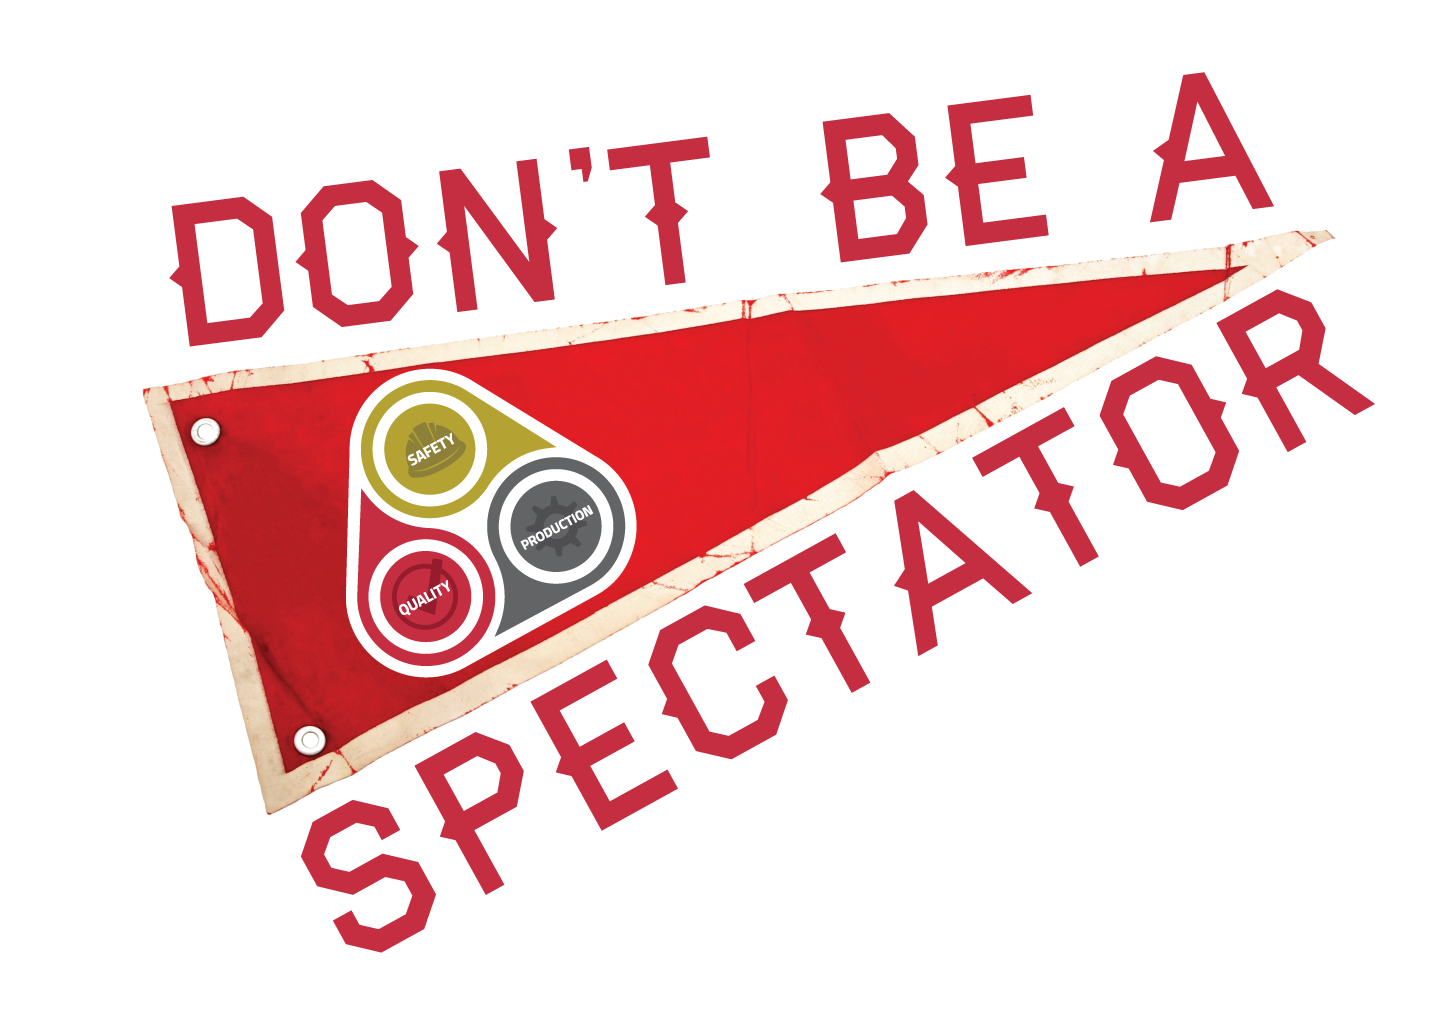 The 'Don't Be A Spectator' Program is designed to drive daily personal commitment, and active communication of Safety, Quality and Production within the organization.